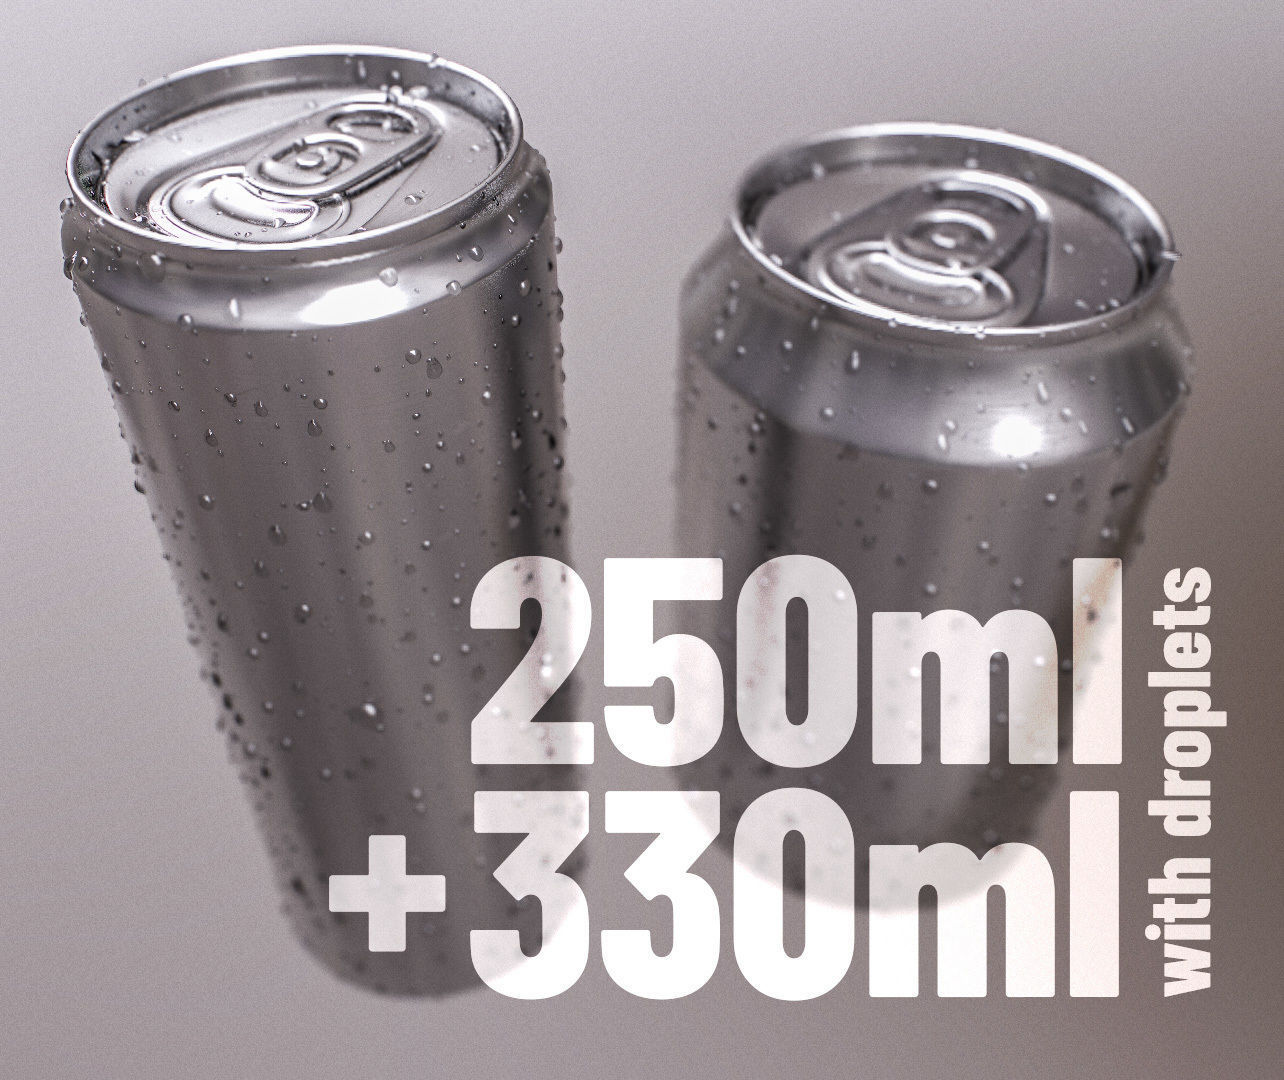 Sodacan 250ml 330ml with Droplets